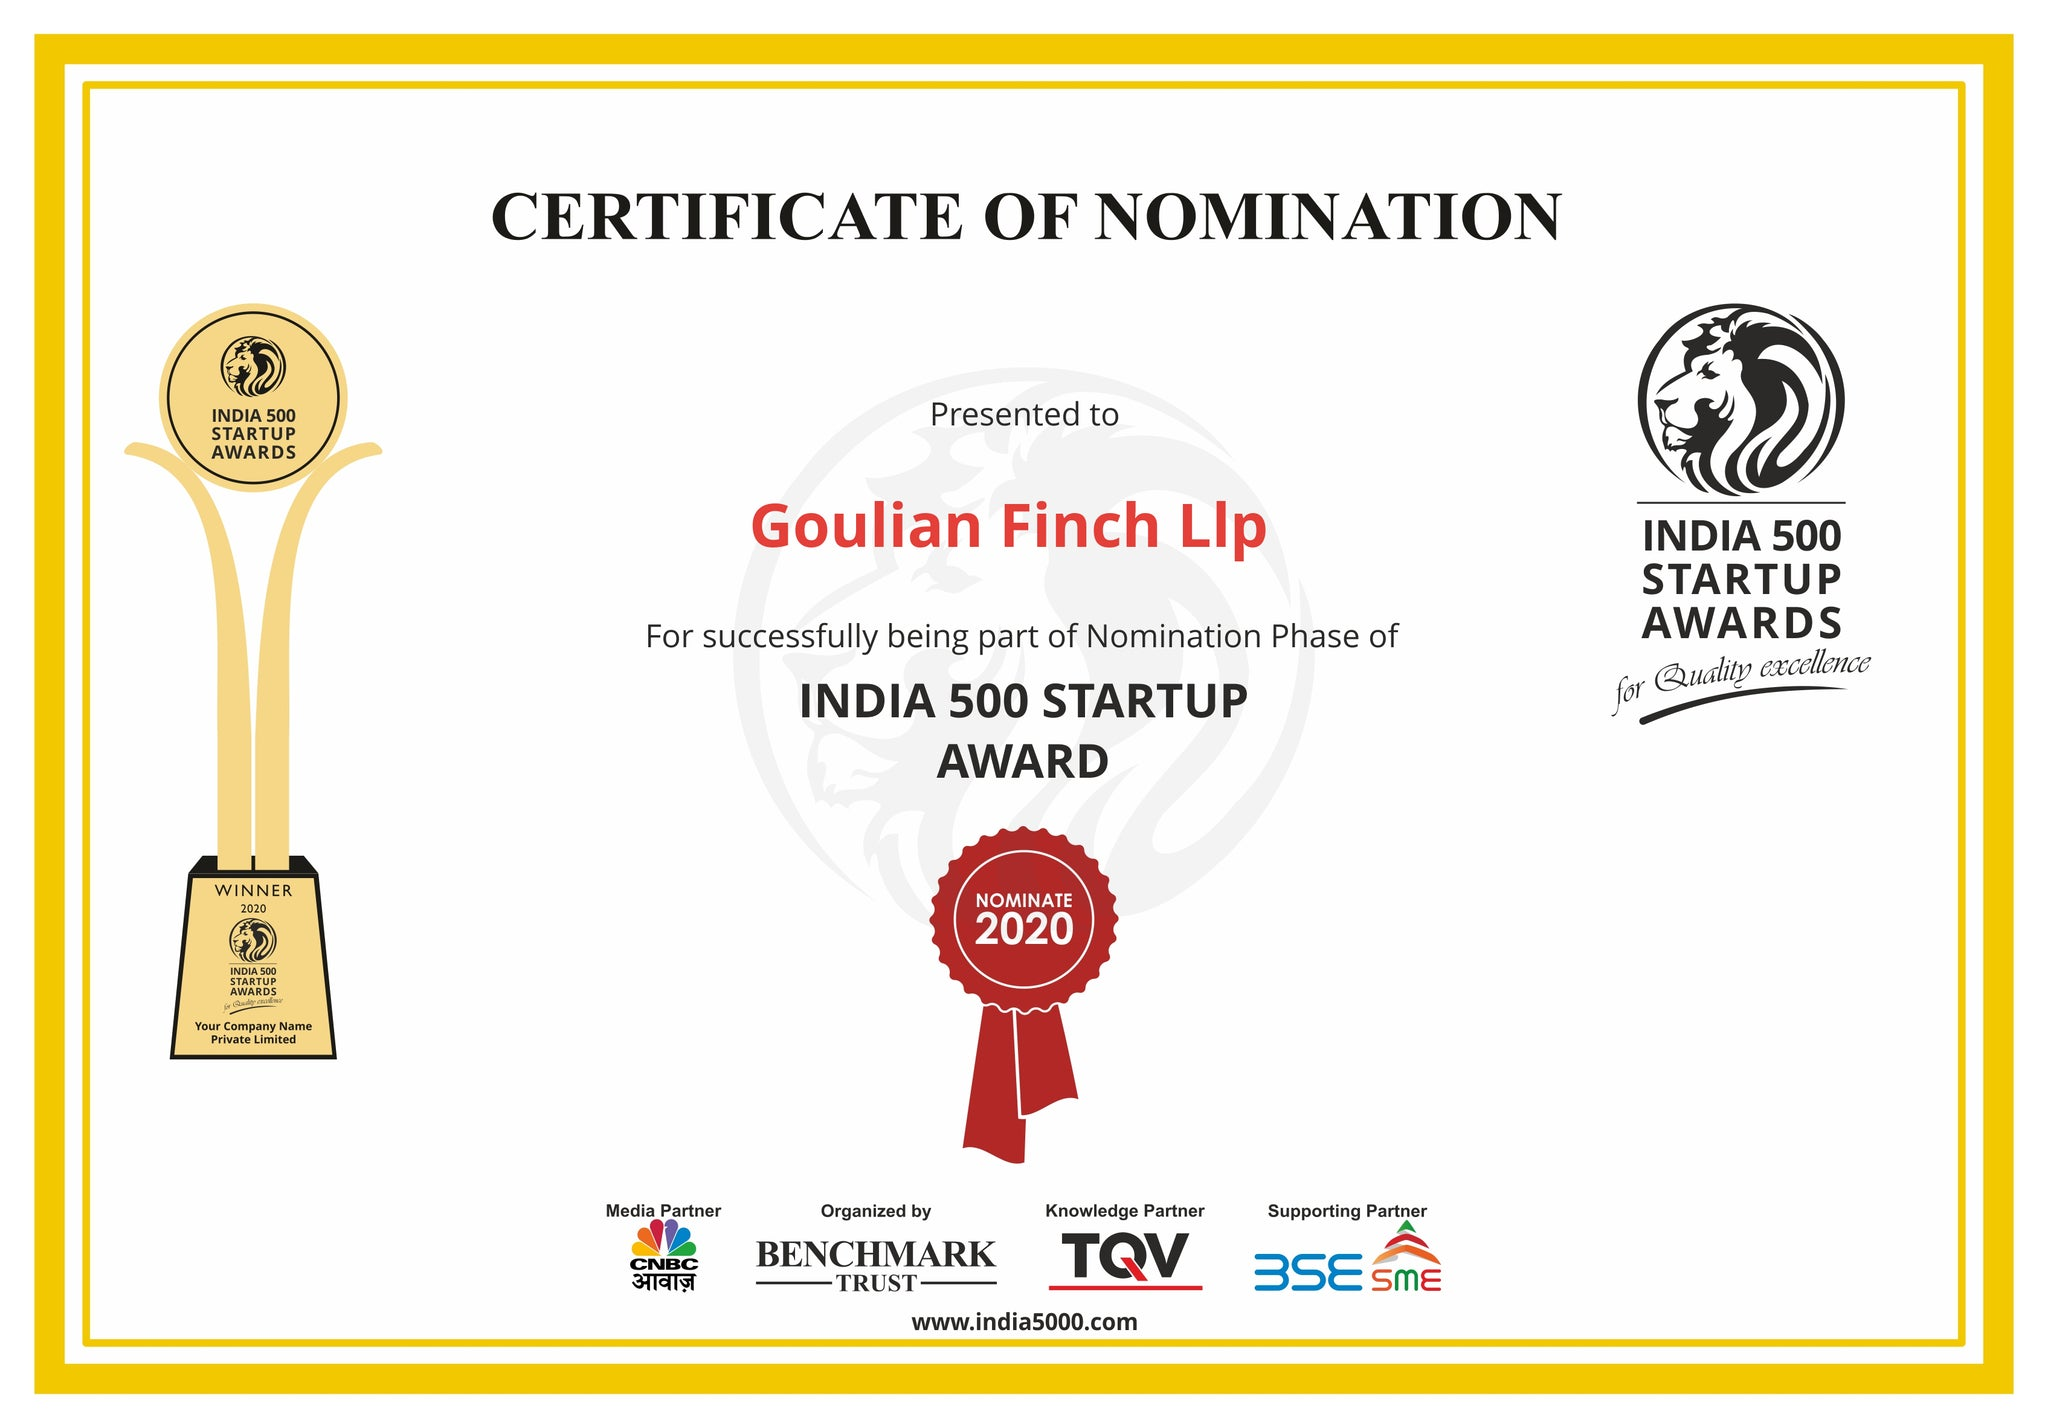 Goulian Finch has been nominated for India 500 Startup Awards